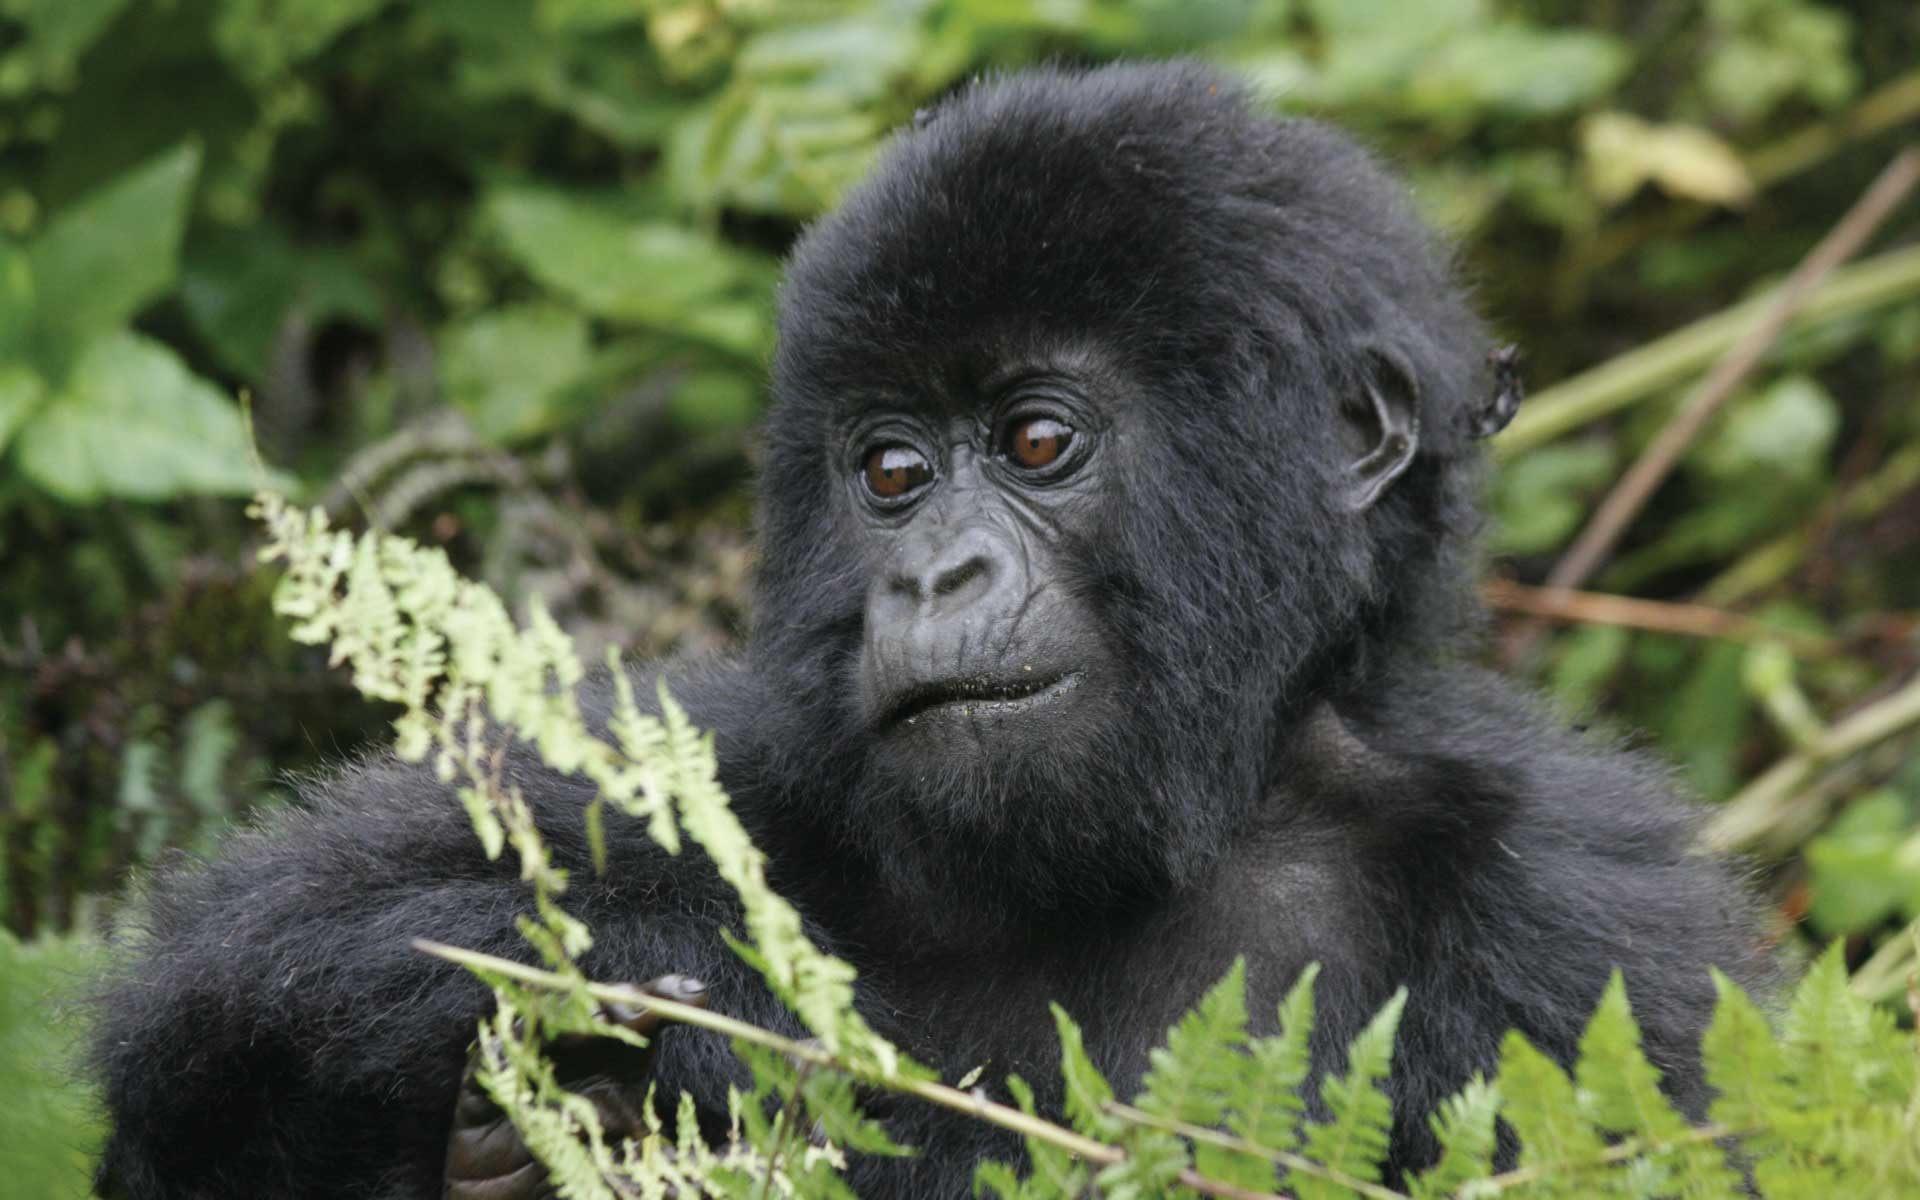 Gorilla Tracking & Wildlife Tour